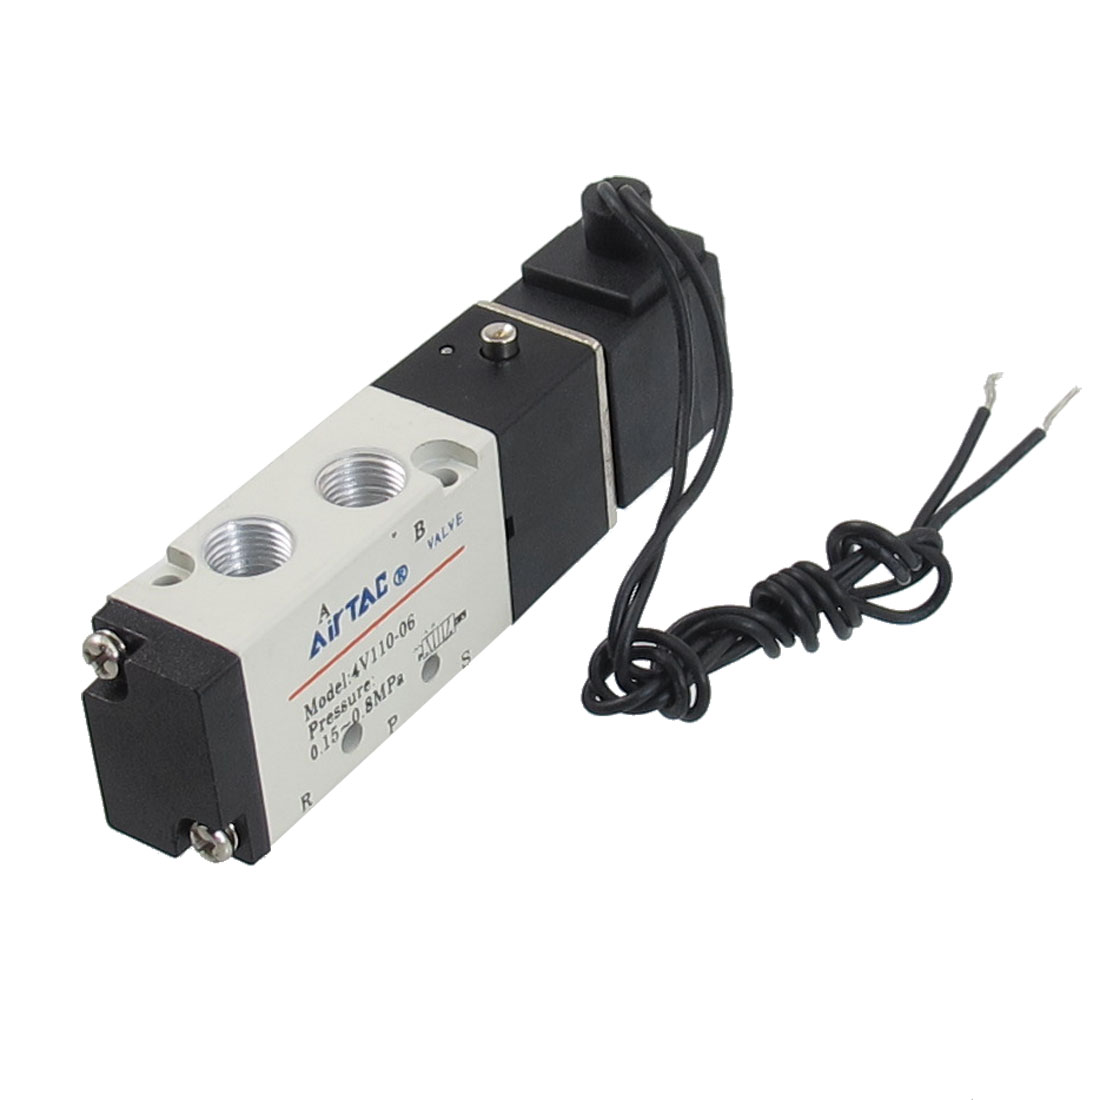 4V110-06 DC24V 2 Position 5 Way Pneumatic Solenoid Valve